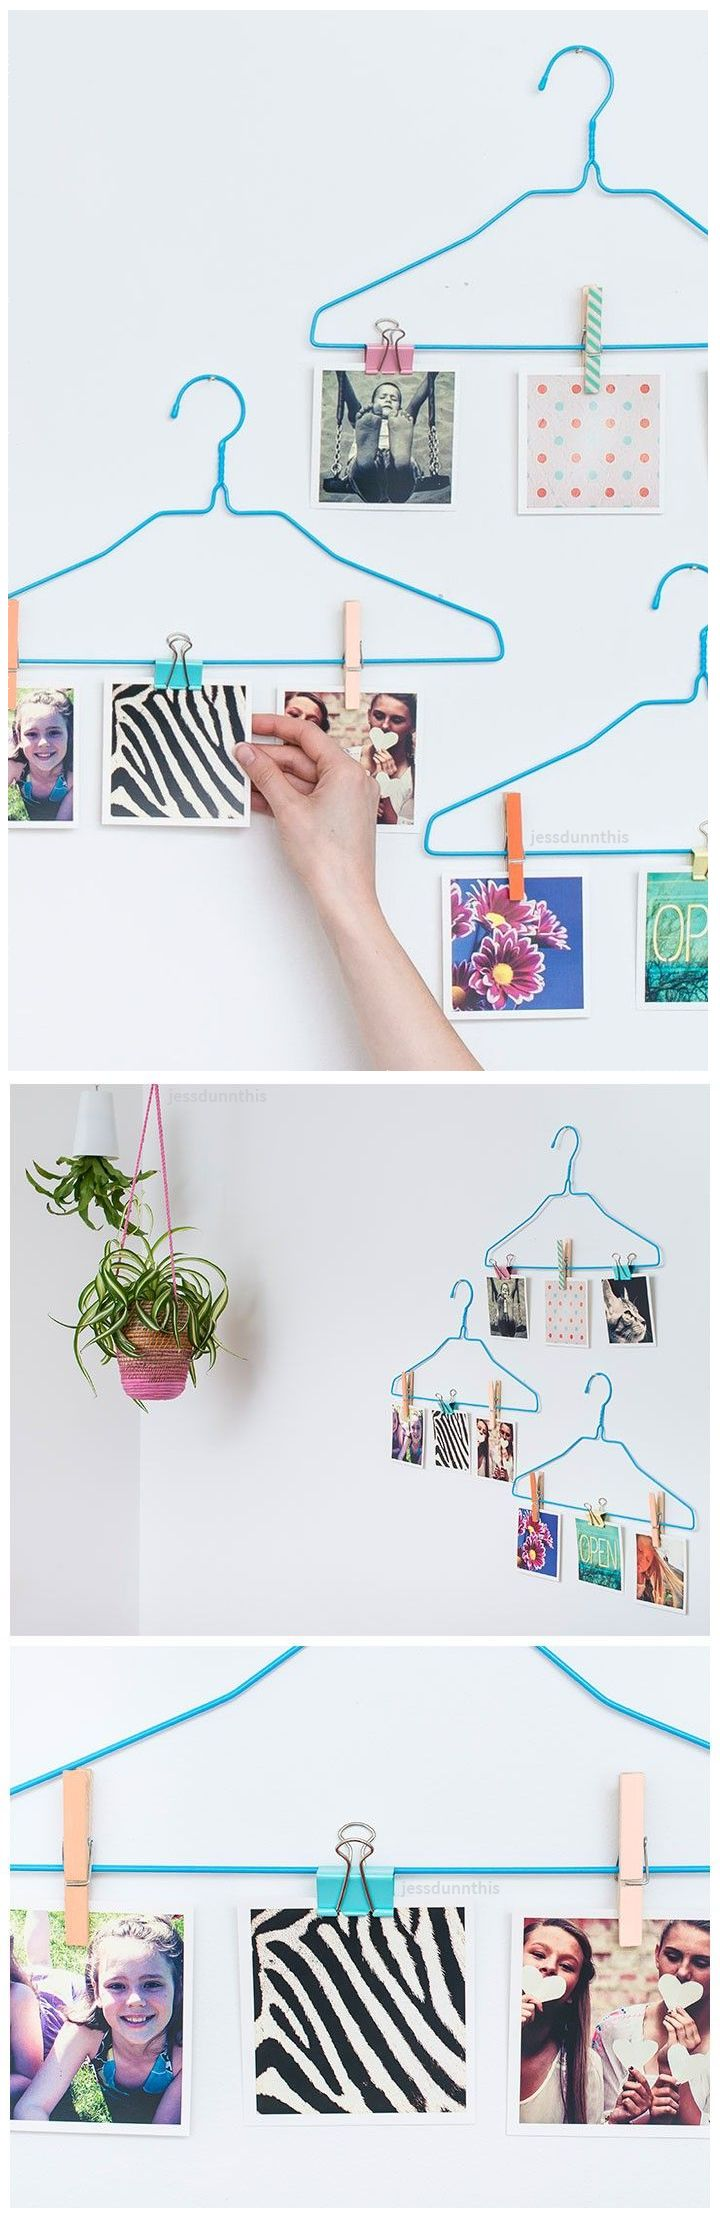 Cute DIY photo display idea - square Instagram prints + colored clothes hangers